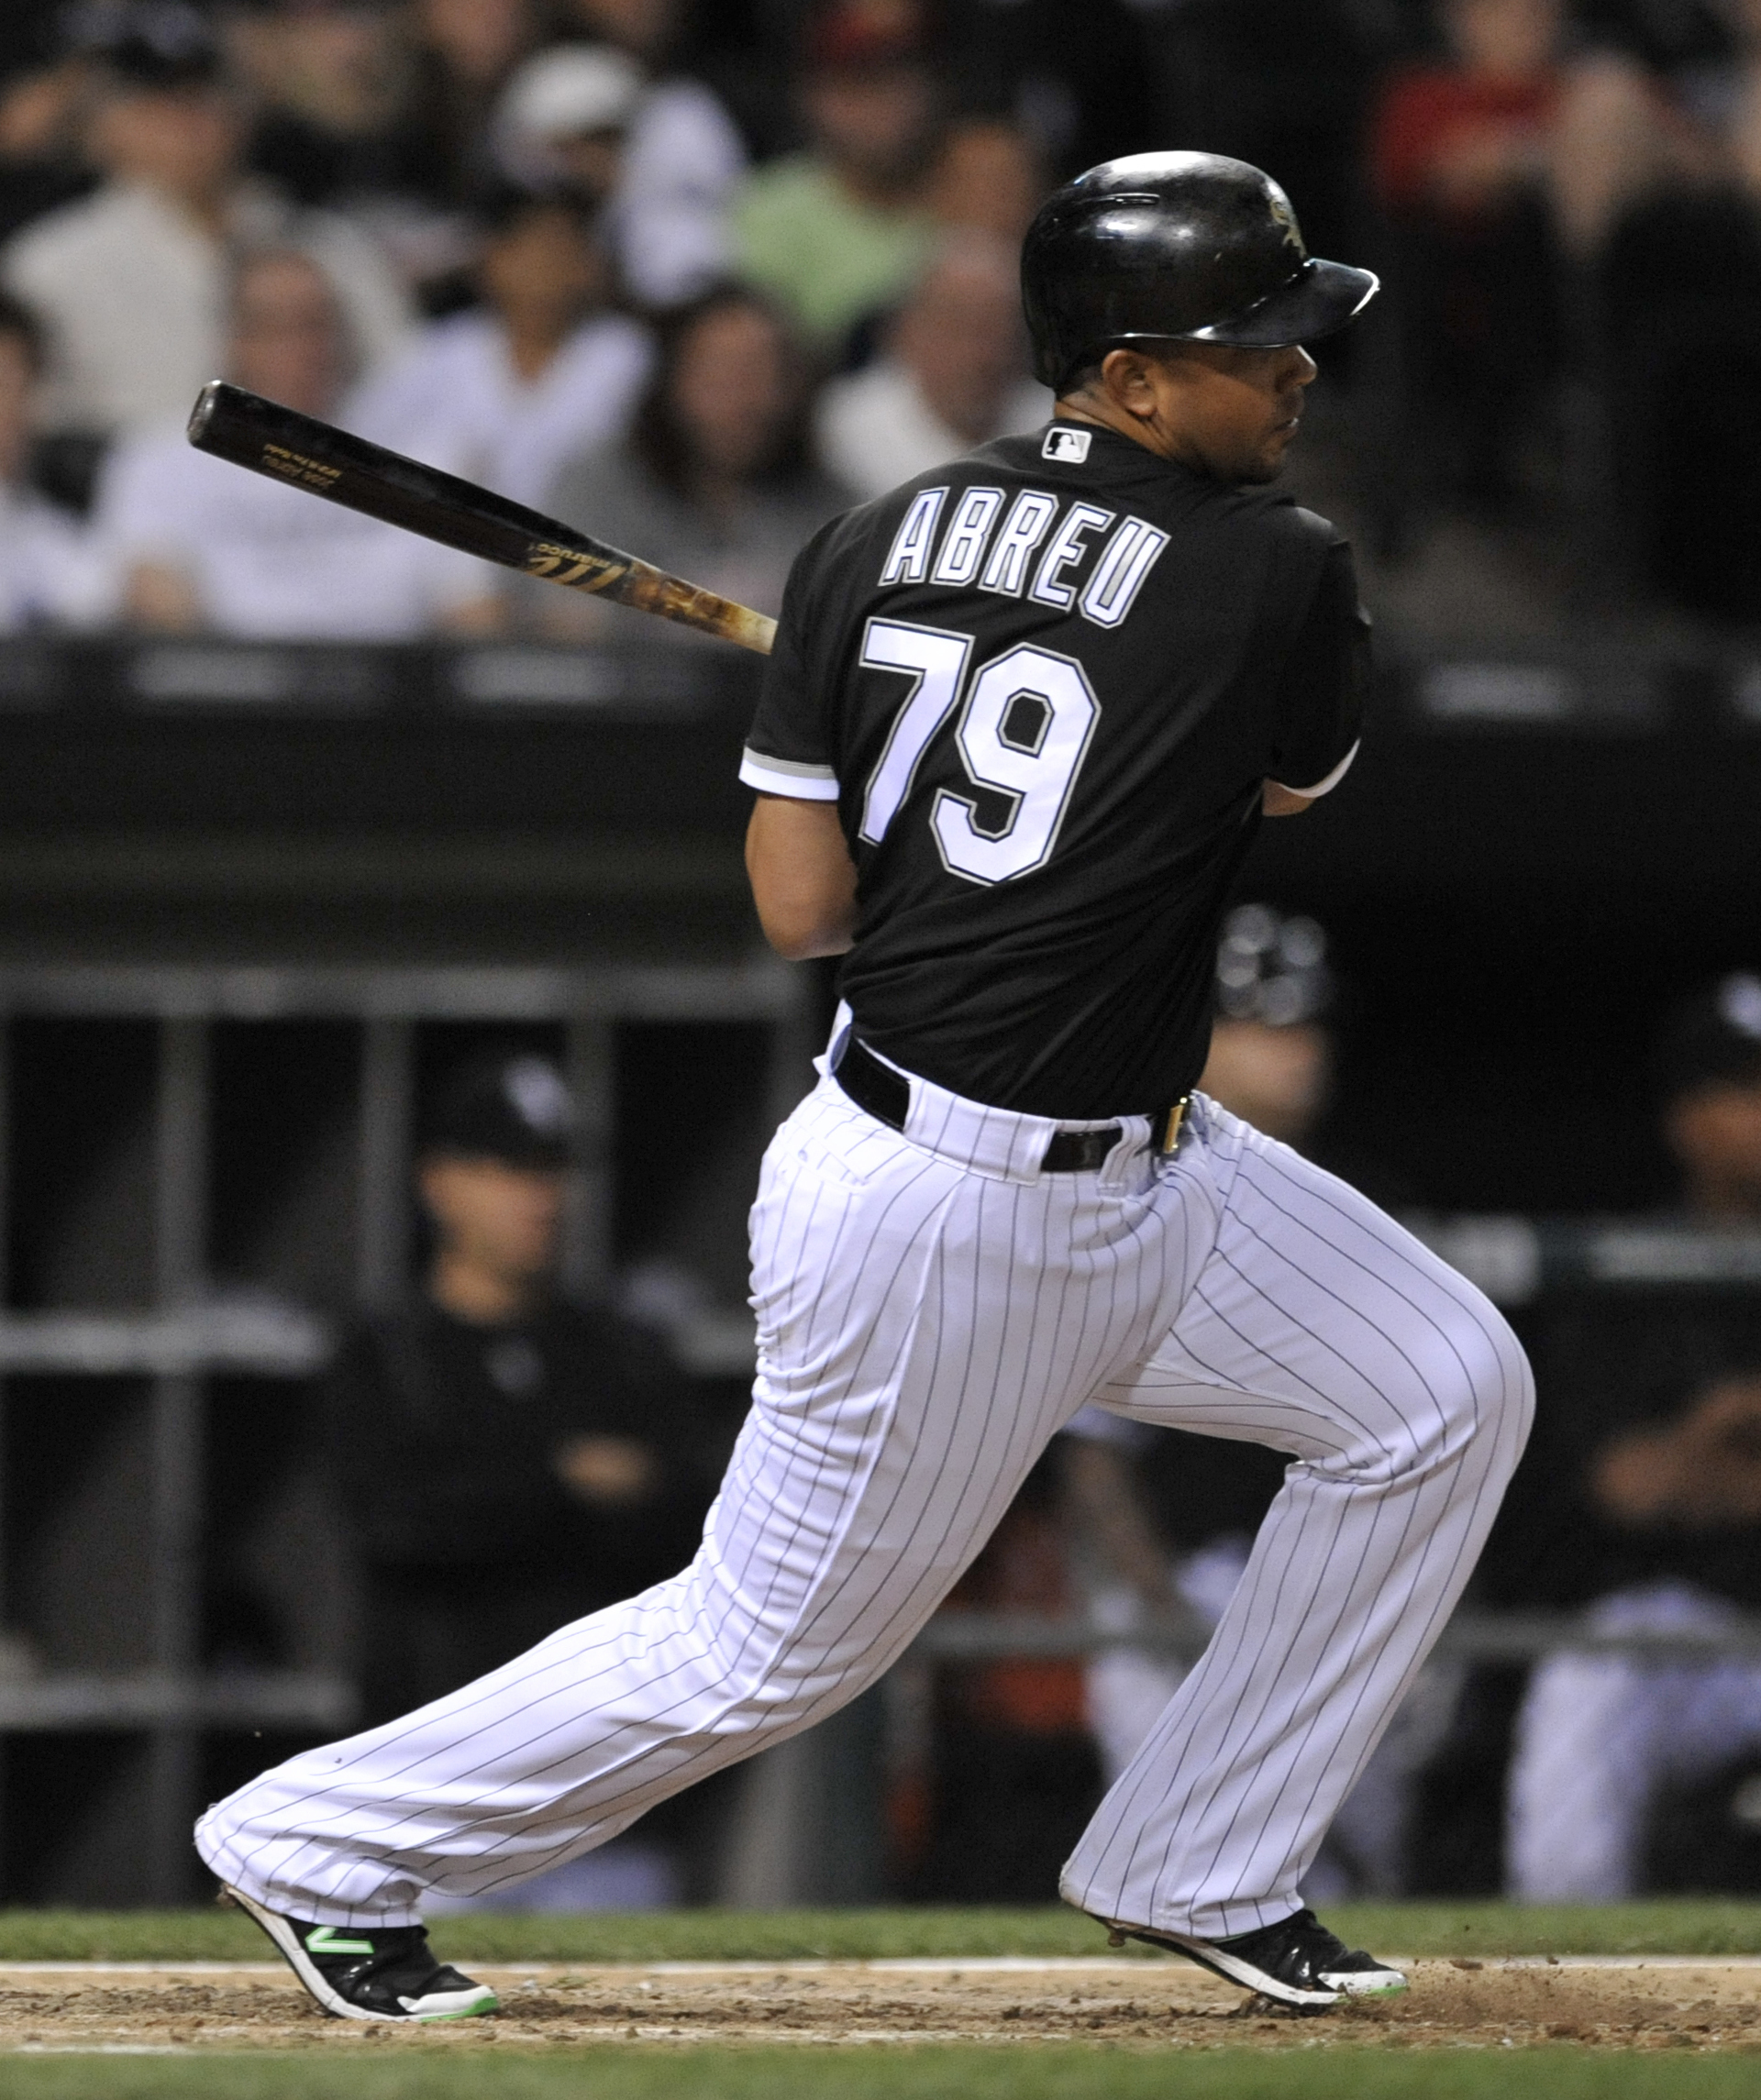 Chicago White Sox's Jose Abreu watches his RBI single during the fifth inning of a baseball game against the Detroit Tigers on Monday, June 13, 2016, in Chicago. (AP Photo/Paul Beaty)